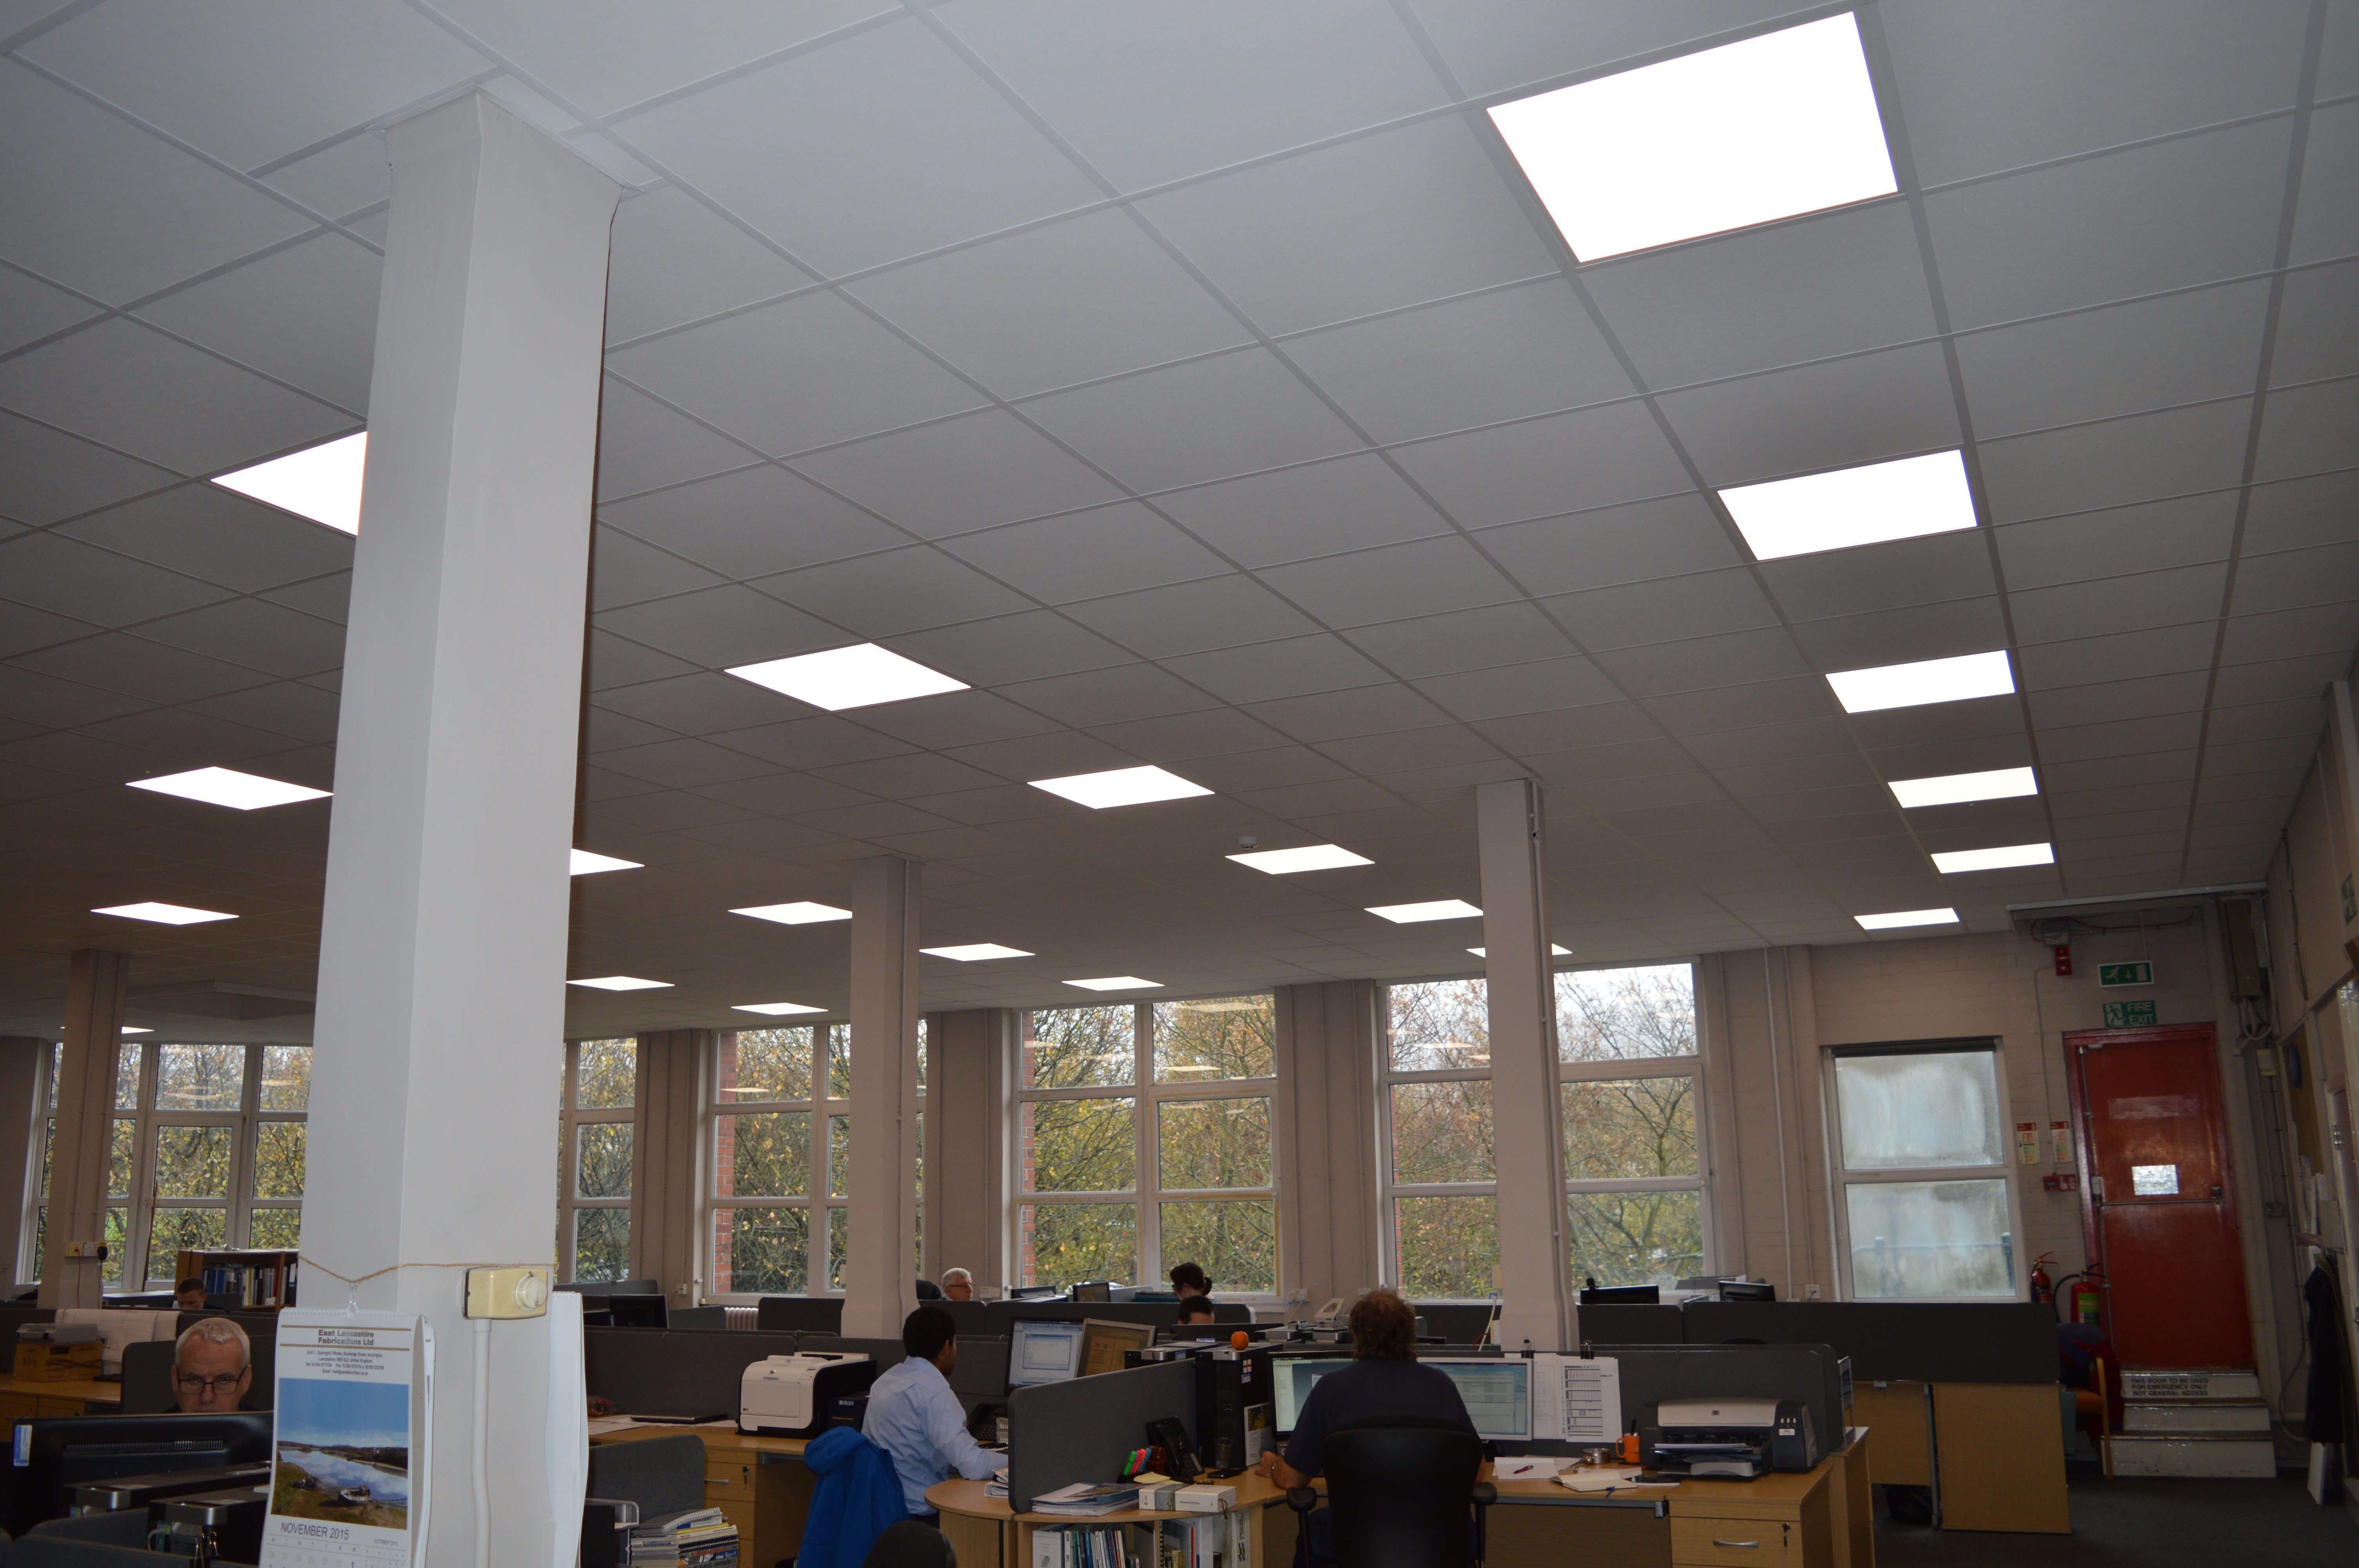 Employees at work in an office with a suspended ceiling